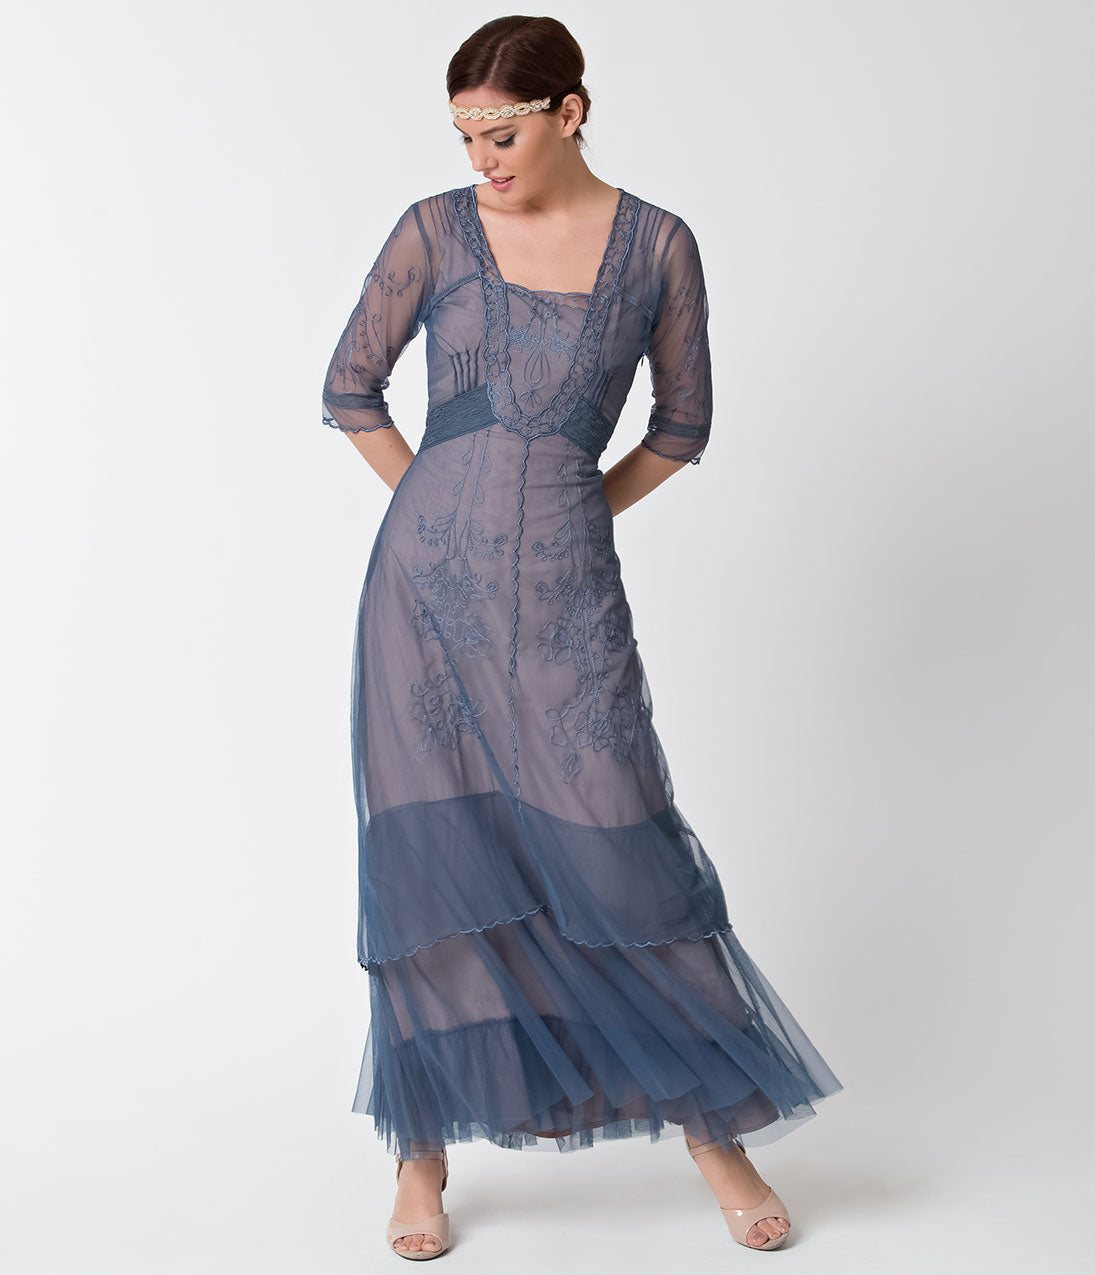 Victorian Costumes: Dresses, Saloon Girls, Southern Belle, Witch Vintage Style Azure Blue  Tan Half Sleeve Mesh Edwardian Flapper Dress $182.00 AT vintagedancer.com